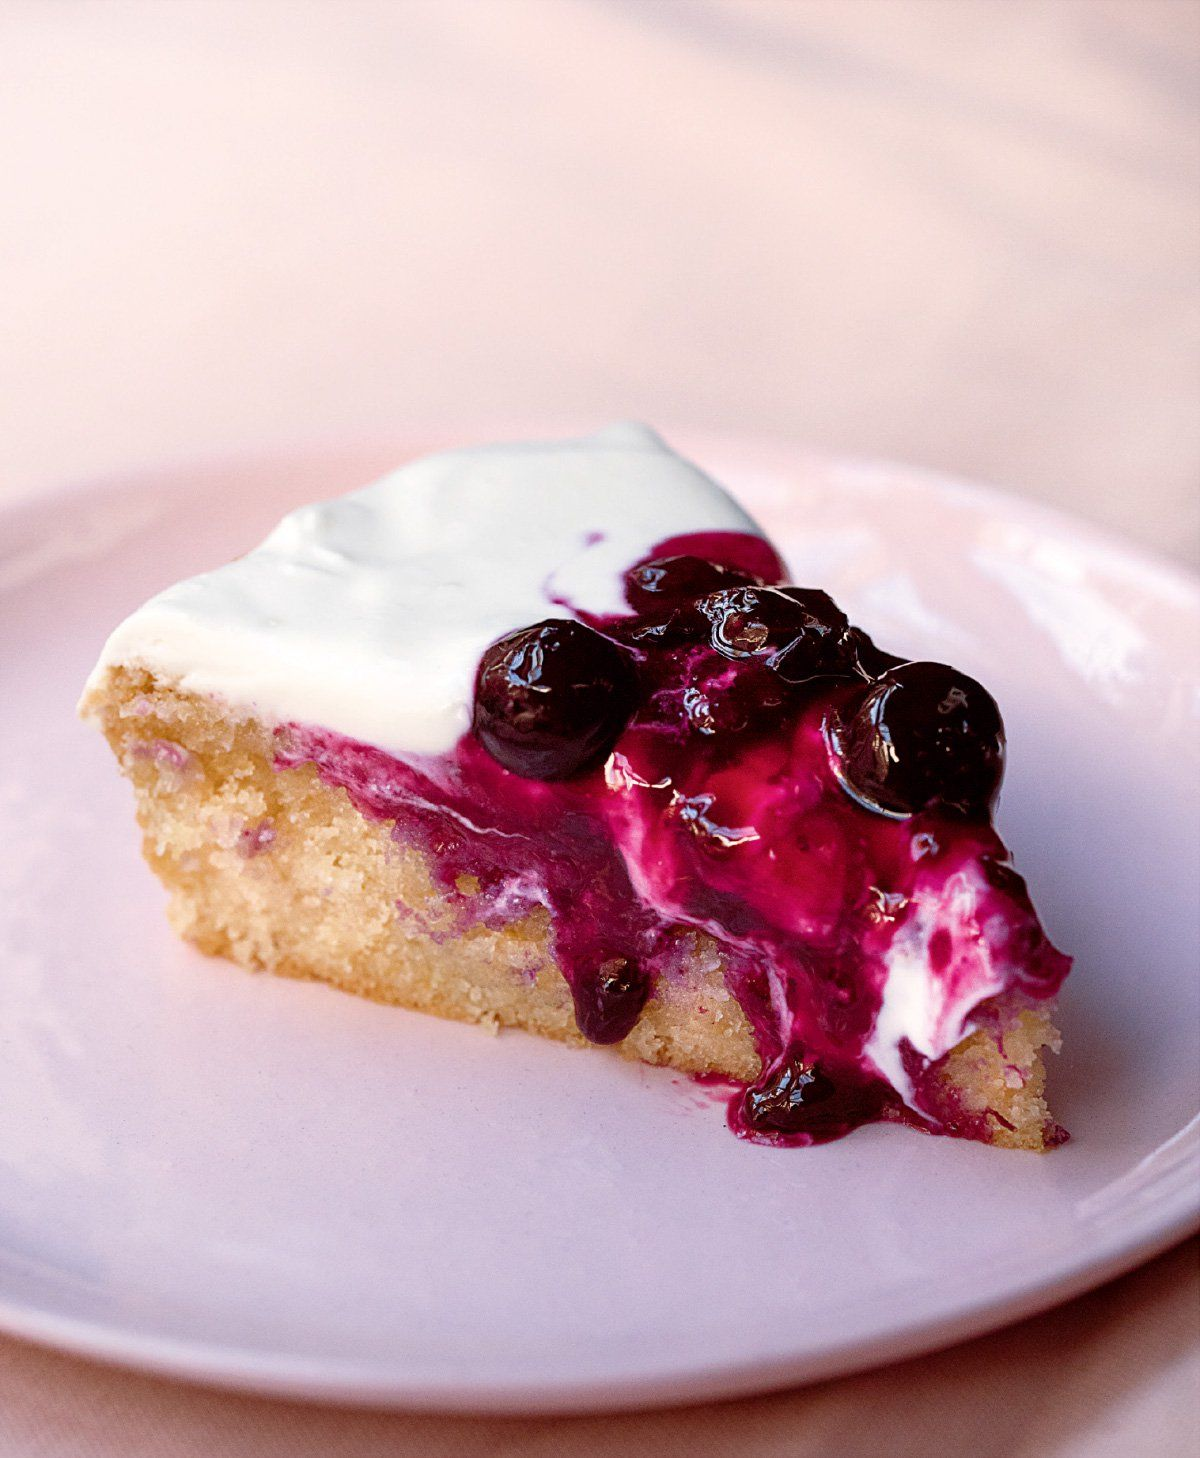 Lemon tendercake with blueberry compote recipe